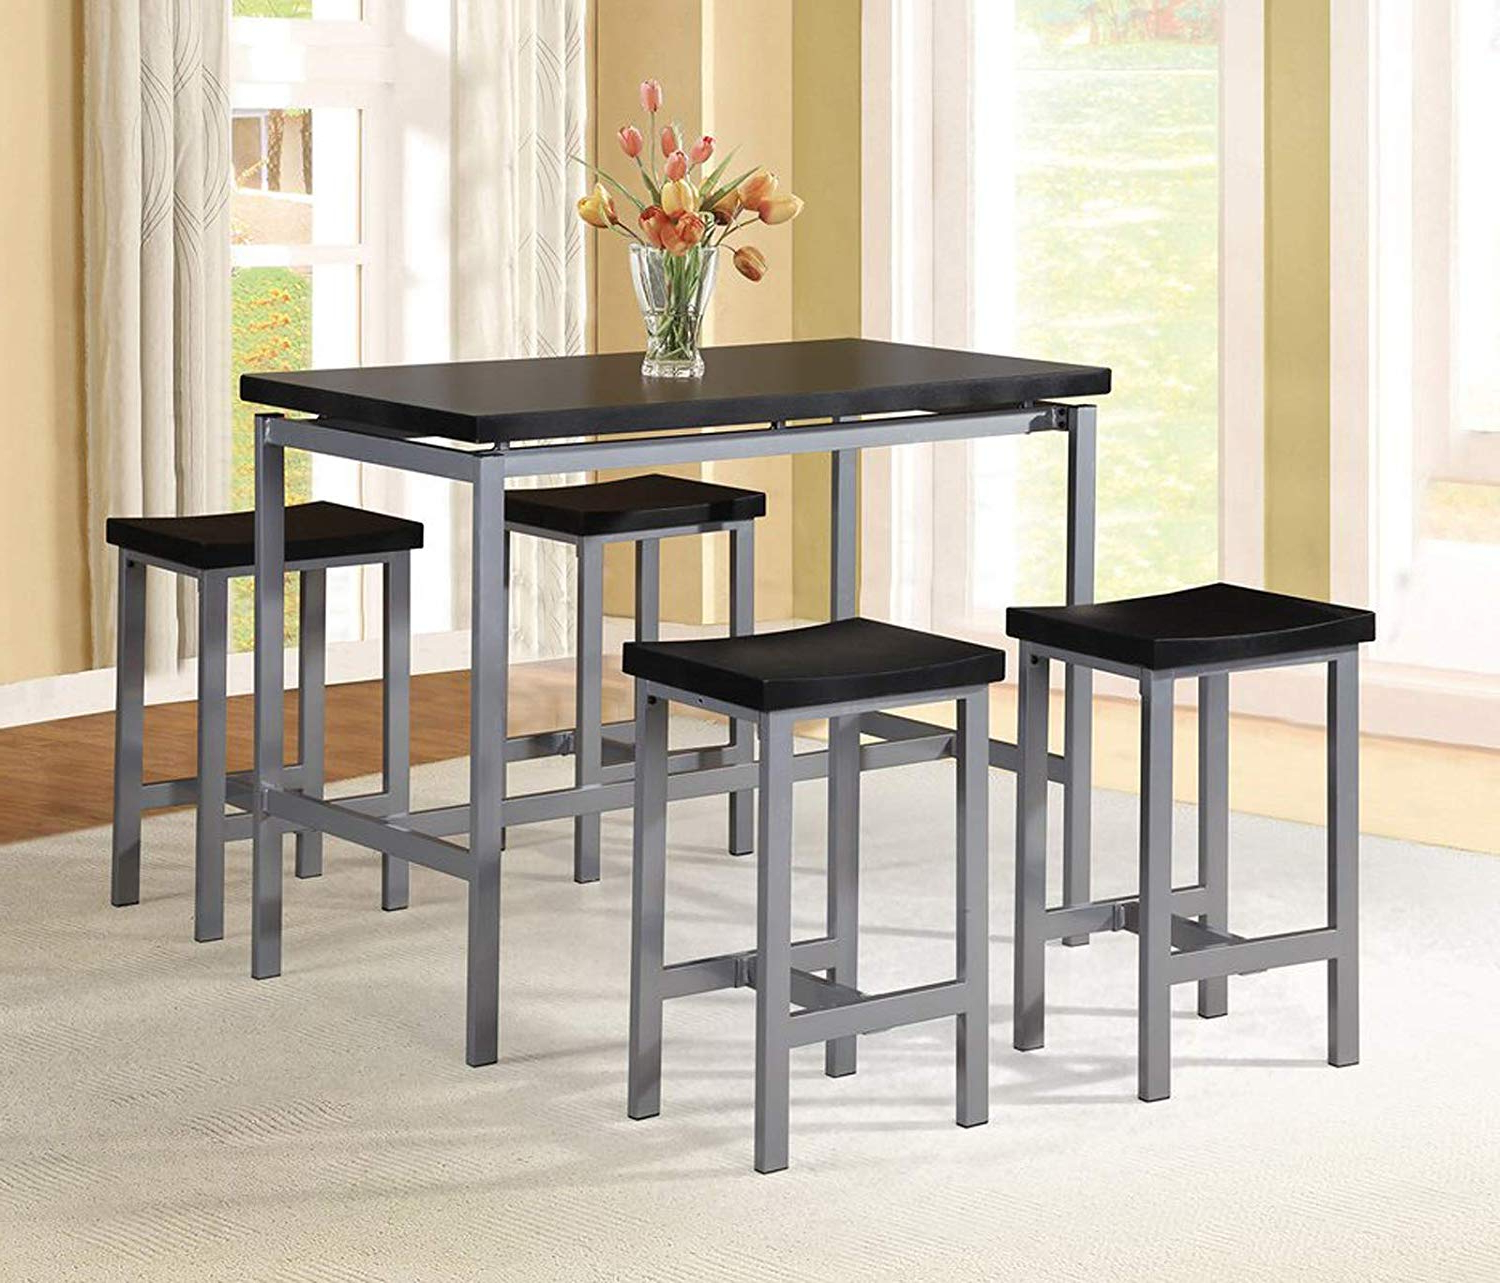 Mysliwiec 5 Piece Counter Height Breakfast Nook Dining Sets With Regard To Trendy Amazon – 5 Piece Dining Set – Counter Height Table And 4 Chairs (View 17 of 25)